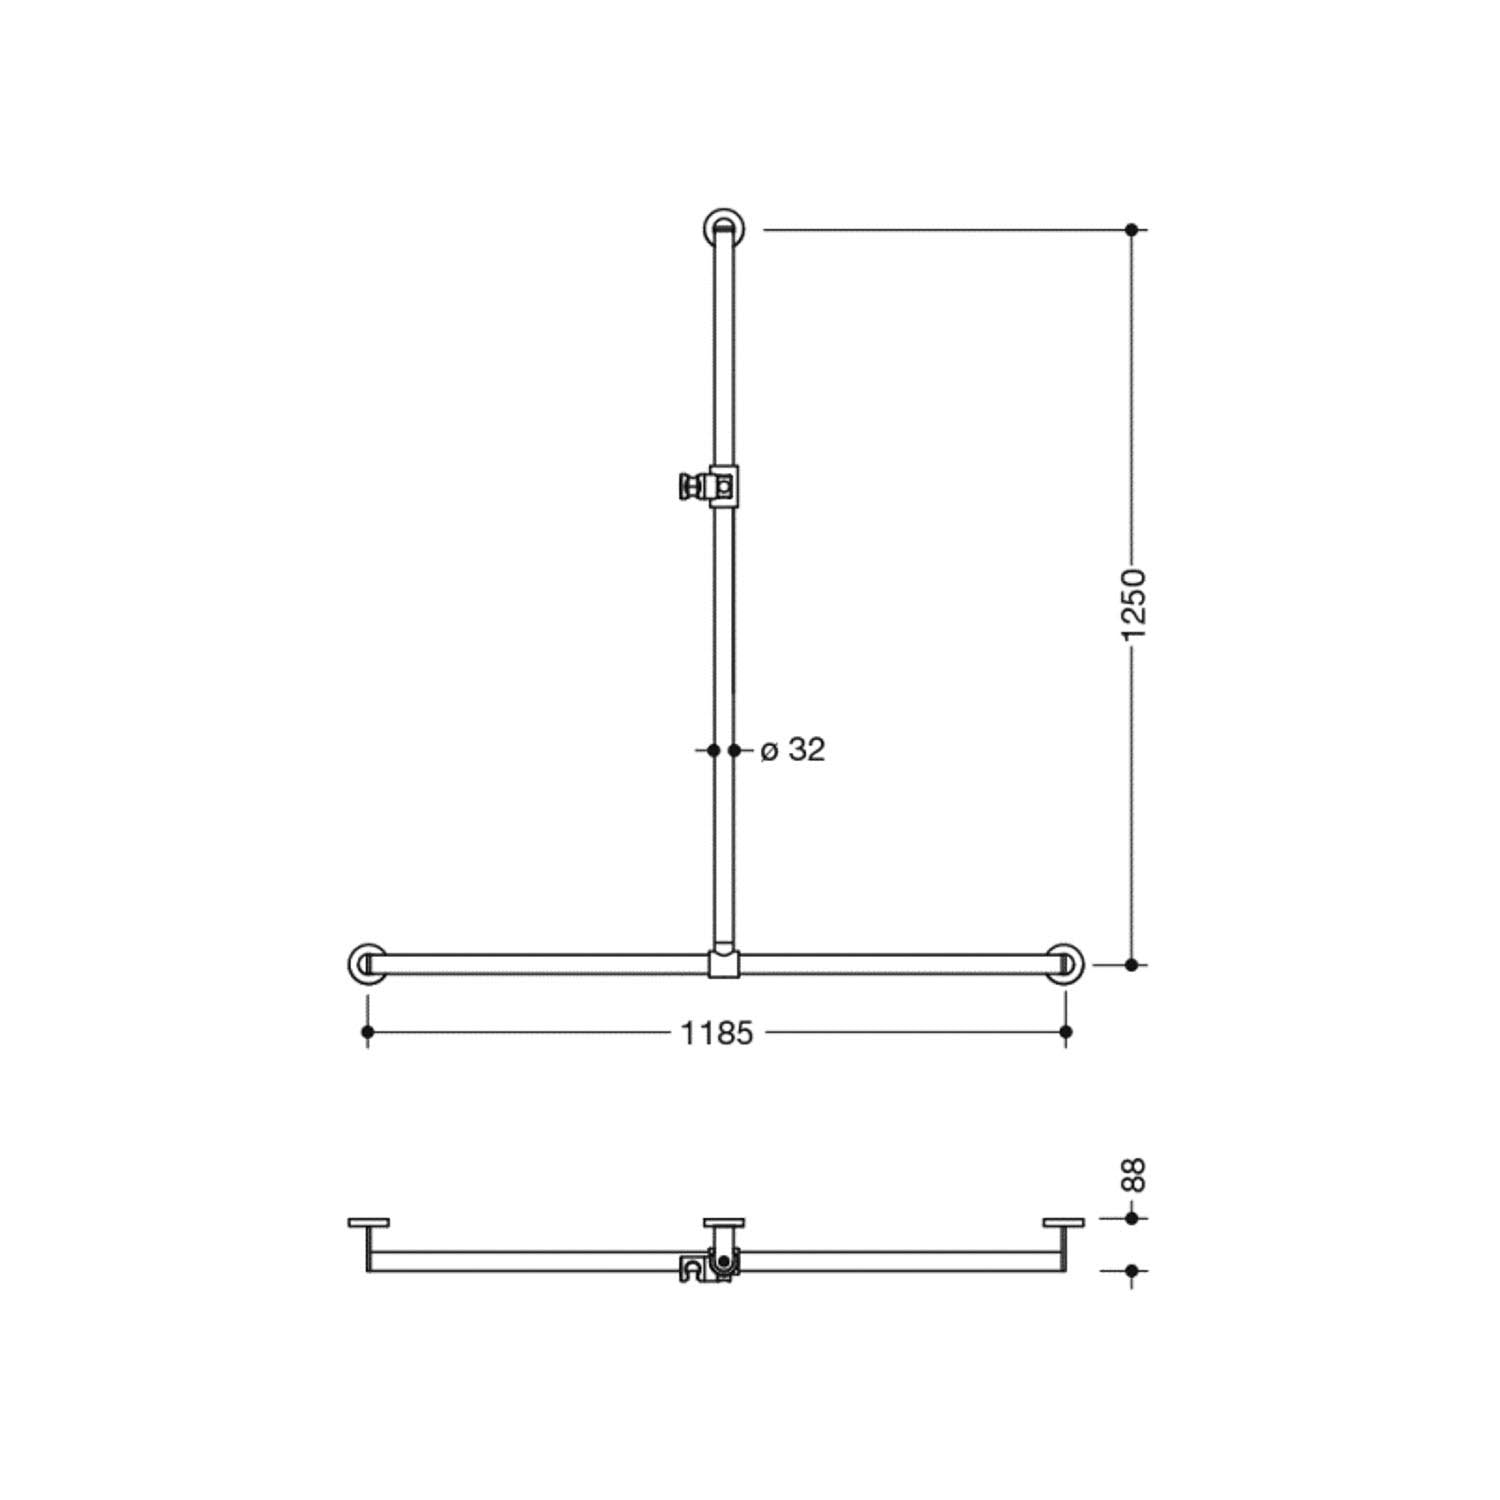 1250x1185mm Freestyle Supportive T Shaped Shower Rail with a satin steel finish dimensional drawing